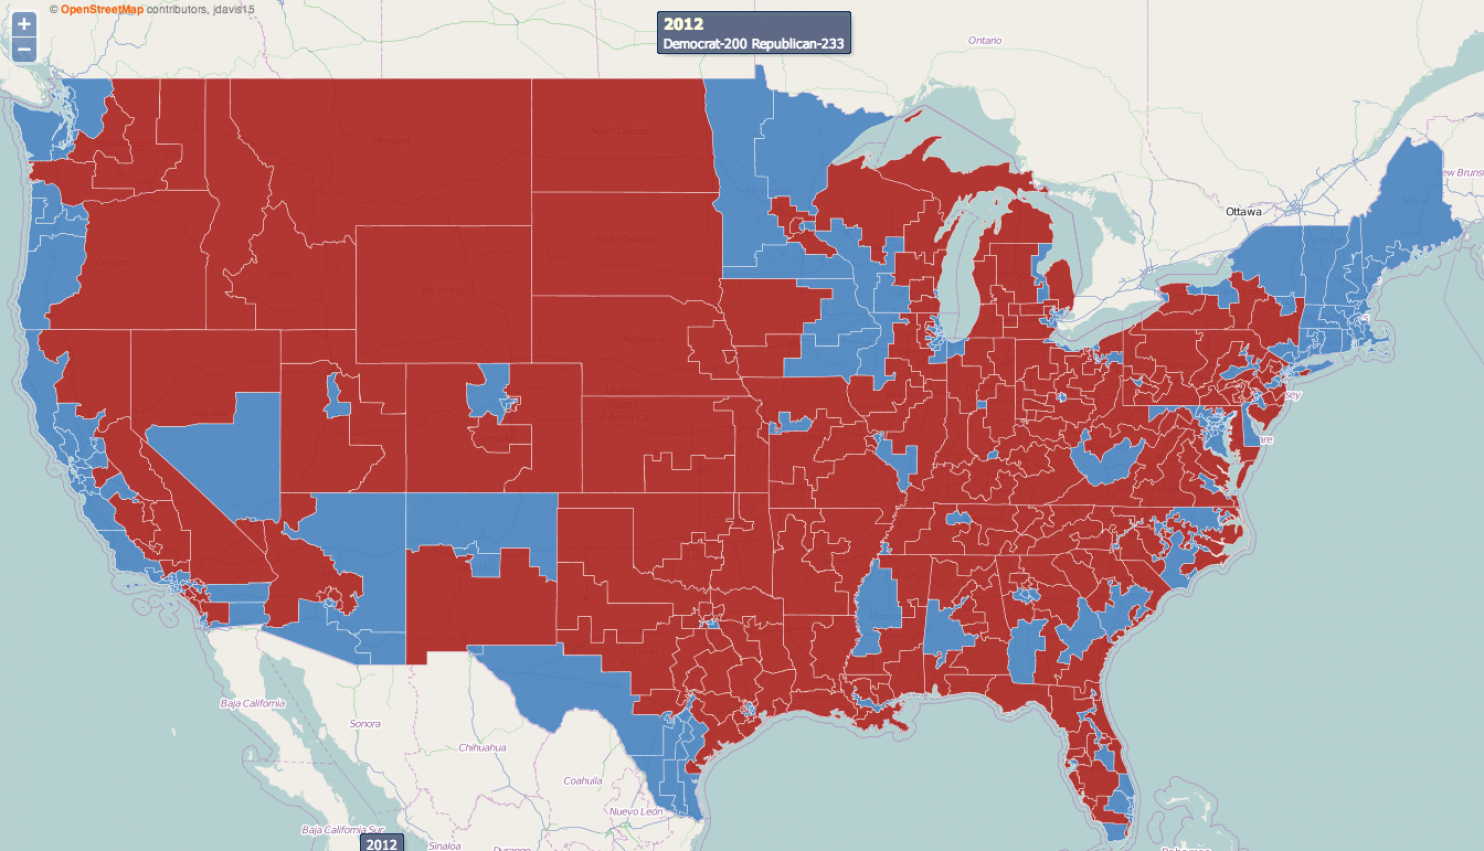 Does The RedStateBlueState Model Of US Electoral Politics How The - Us map 2014